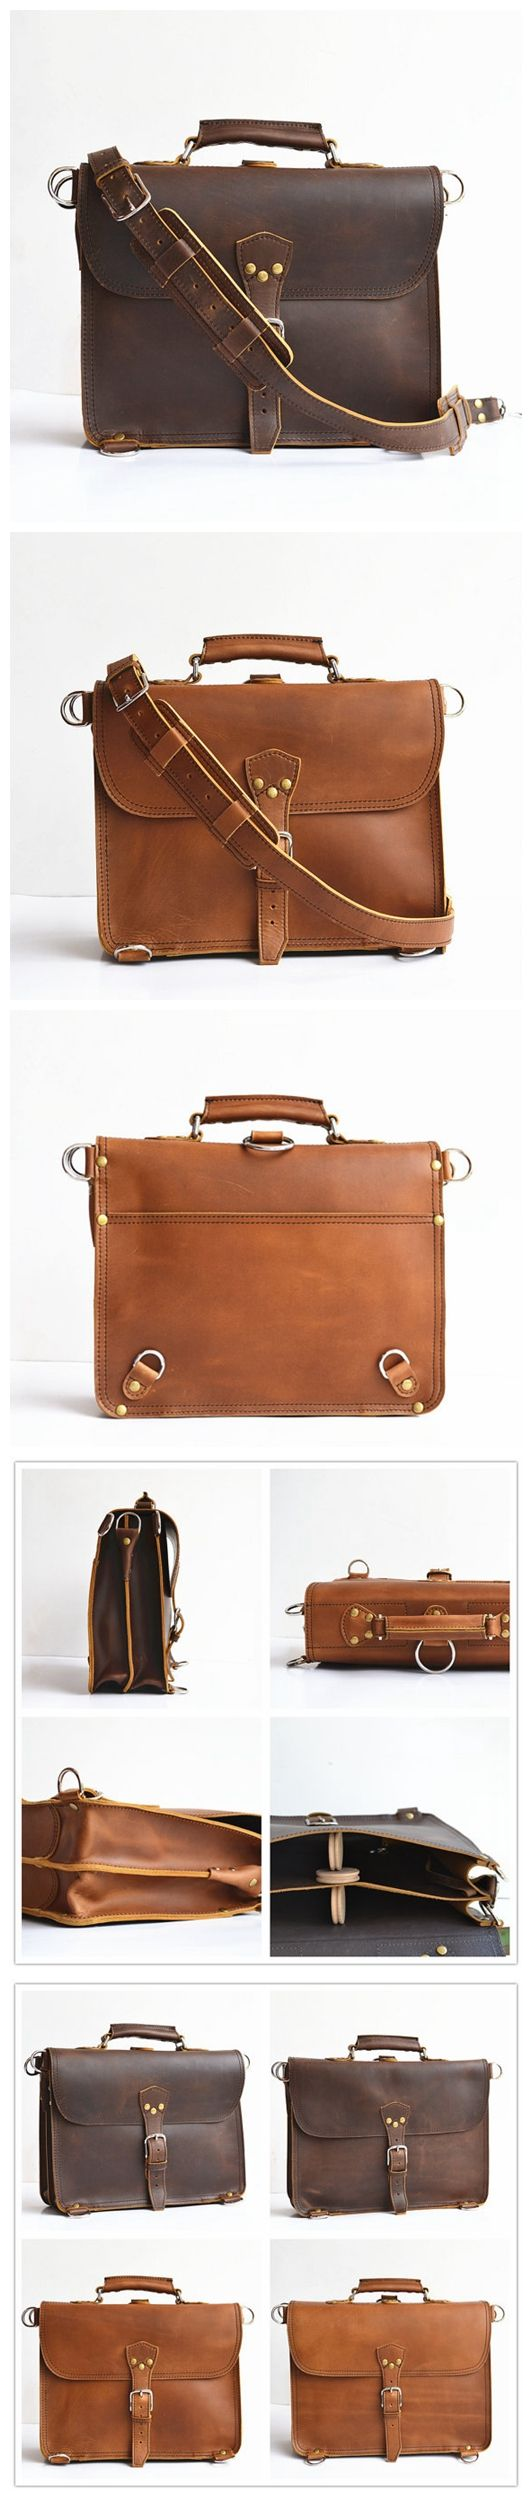 Handmade Mens Leather Briefcase Men Leather Backpack Thin Leather Bag for Men Leather Messenger Bag Leather Satchel Leather MacBook Bag